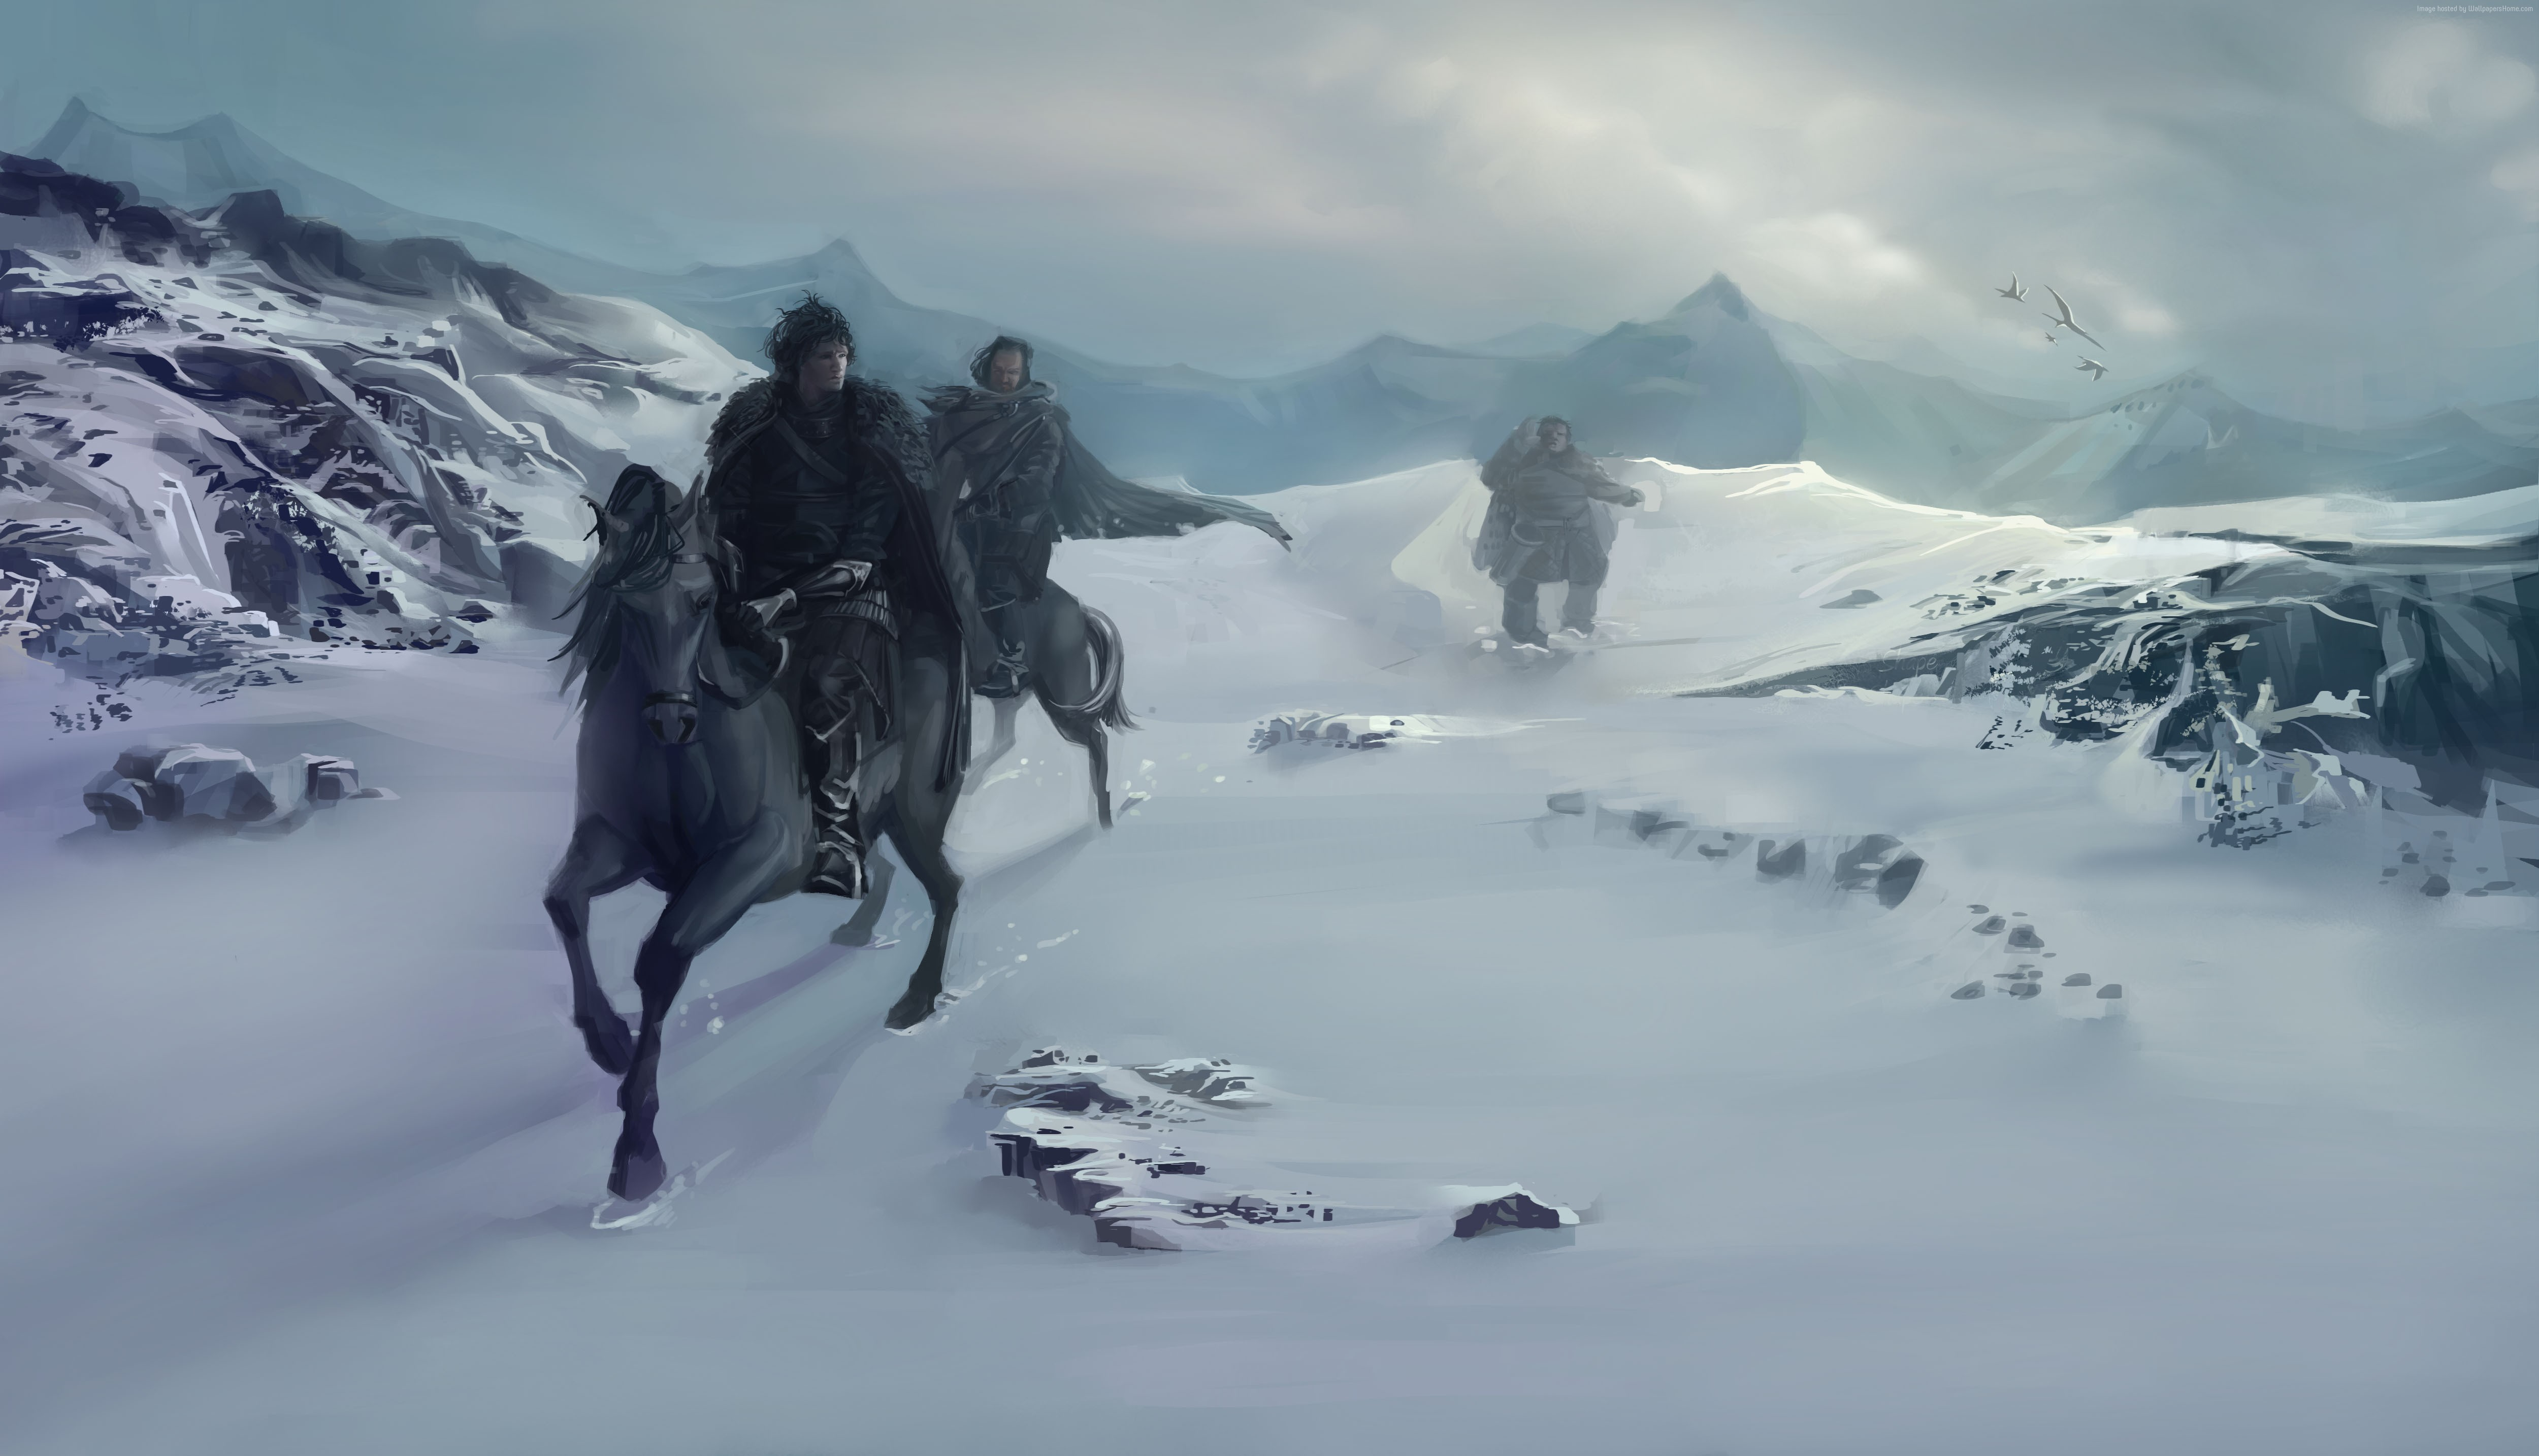 Wallpaper Movies Drama Game of Thrones A Song of Ice and Fire 5000x2868